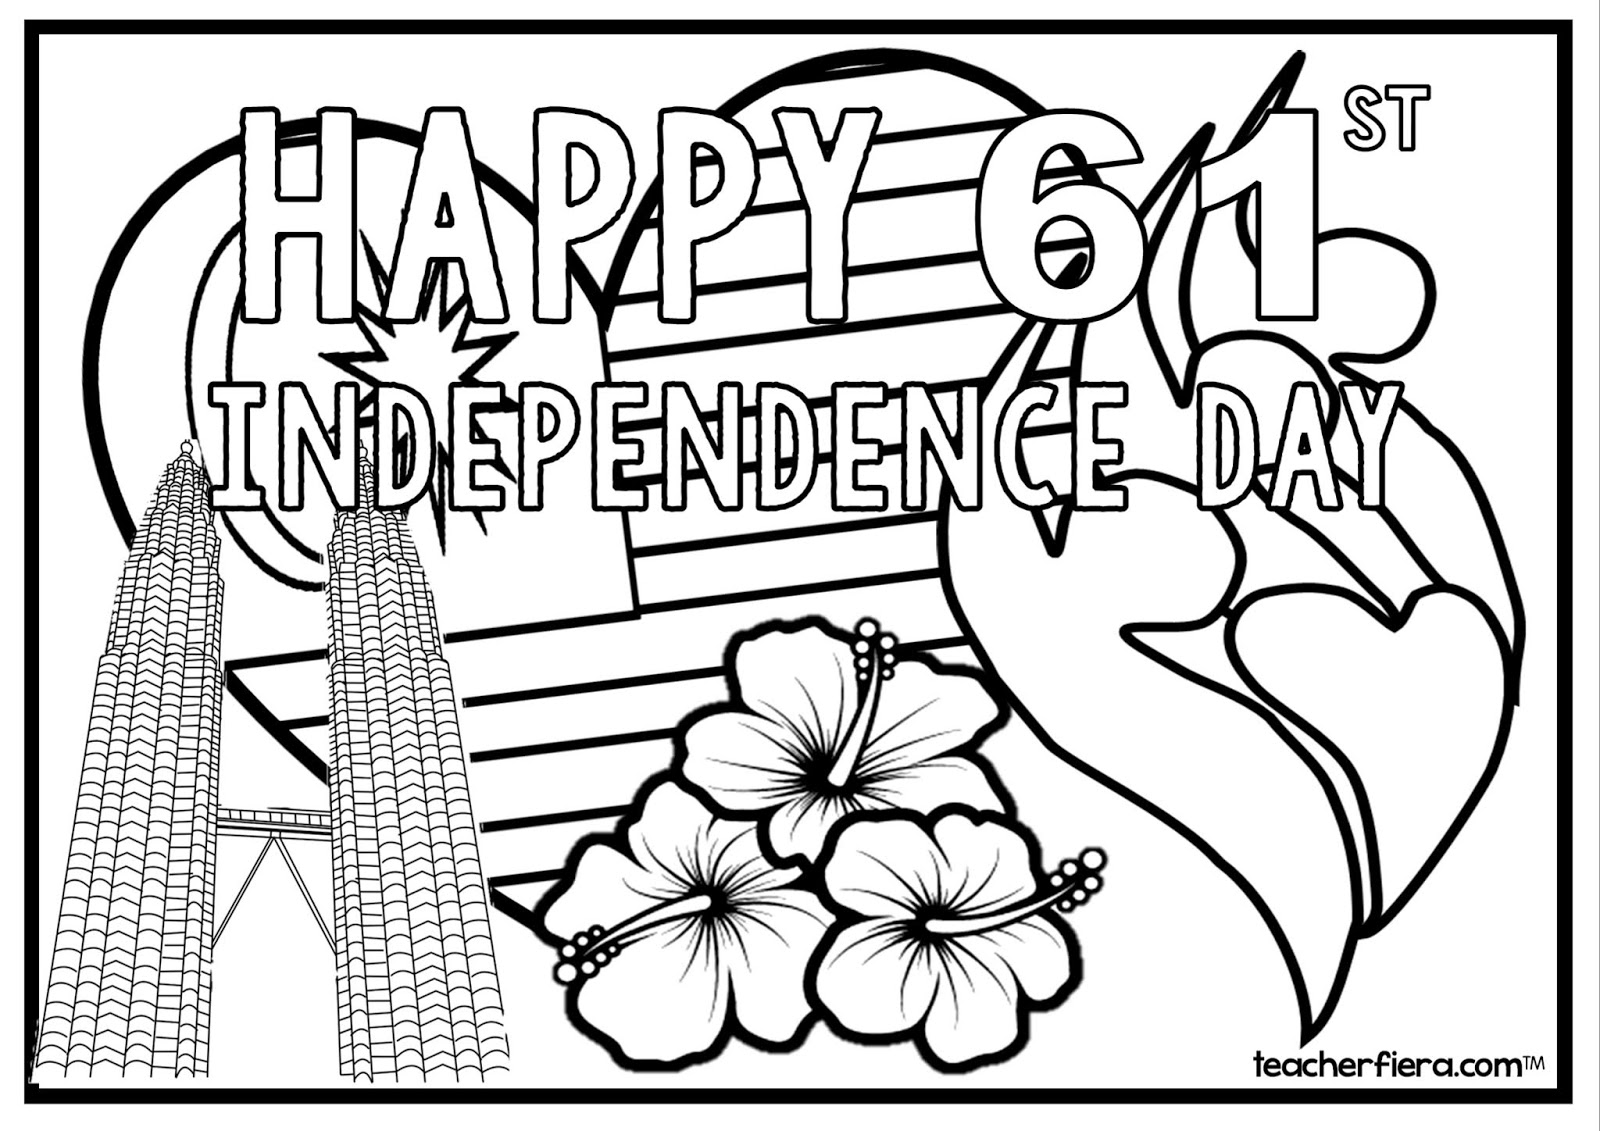 teacherfiera.com: COLOURING SHEETS MALAYSIA INDEPENDENCE